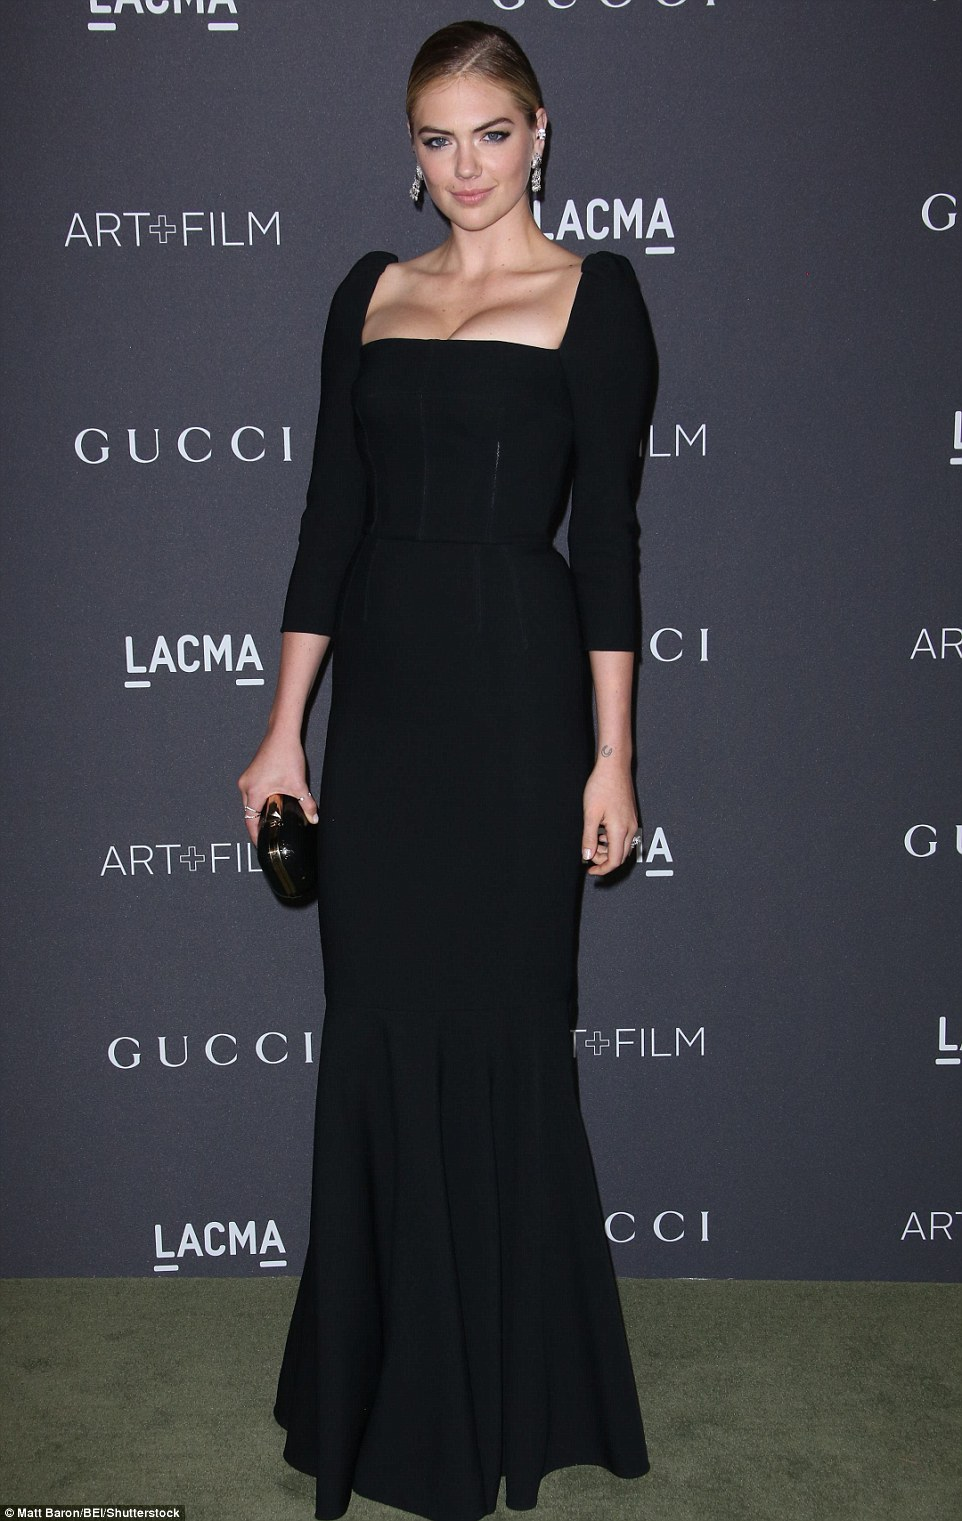 Kate Upton flaunts shapely physique at the LACMA Art + Film Gala in LA